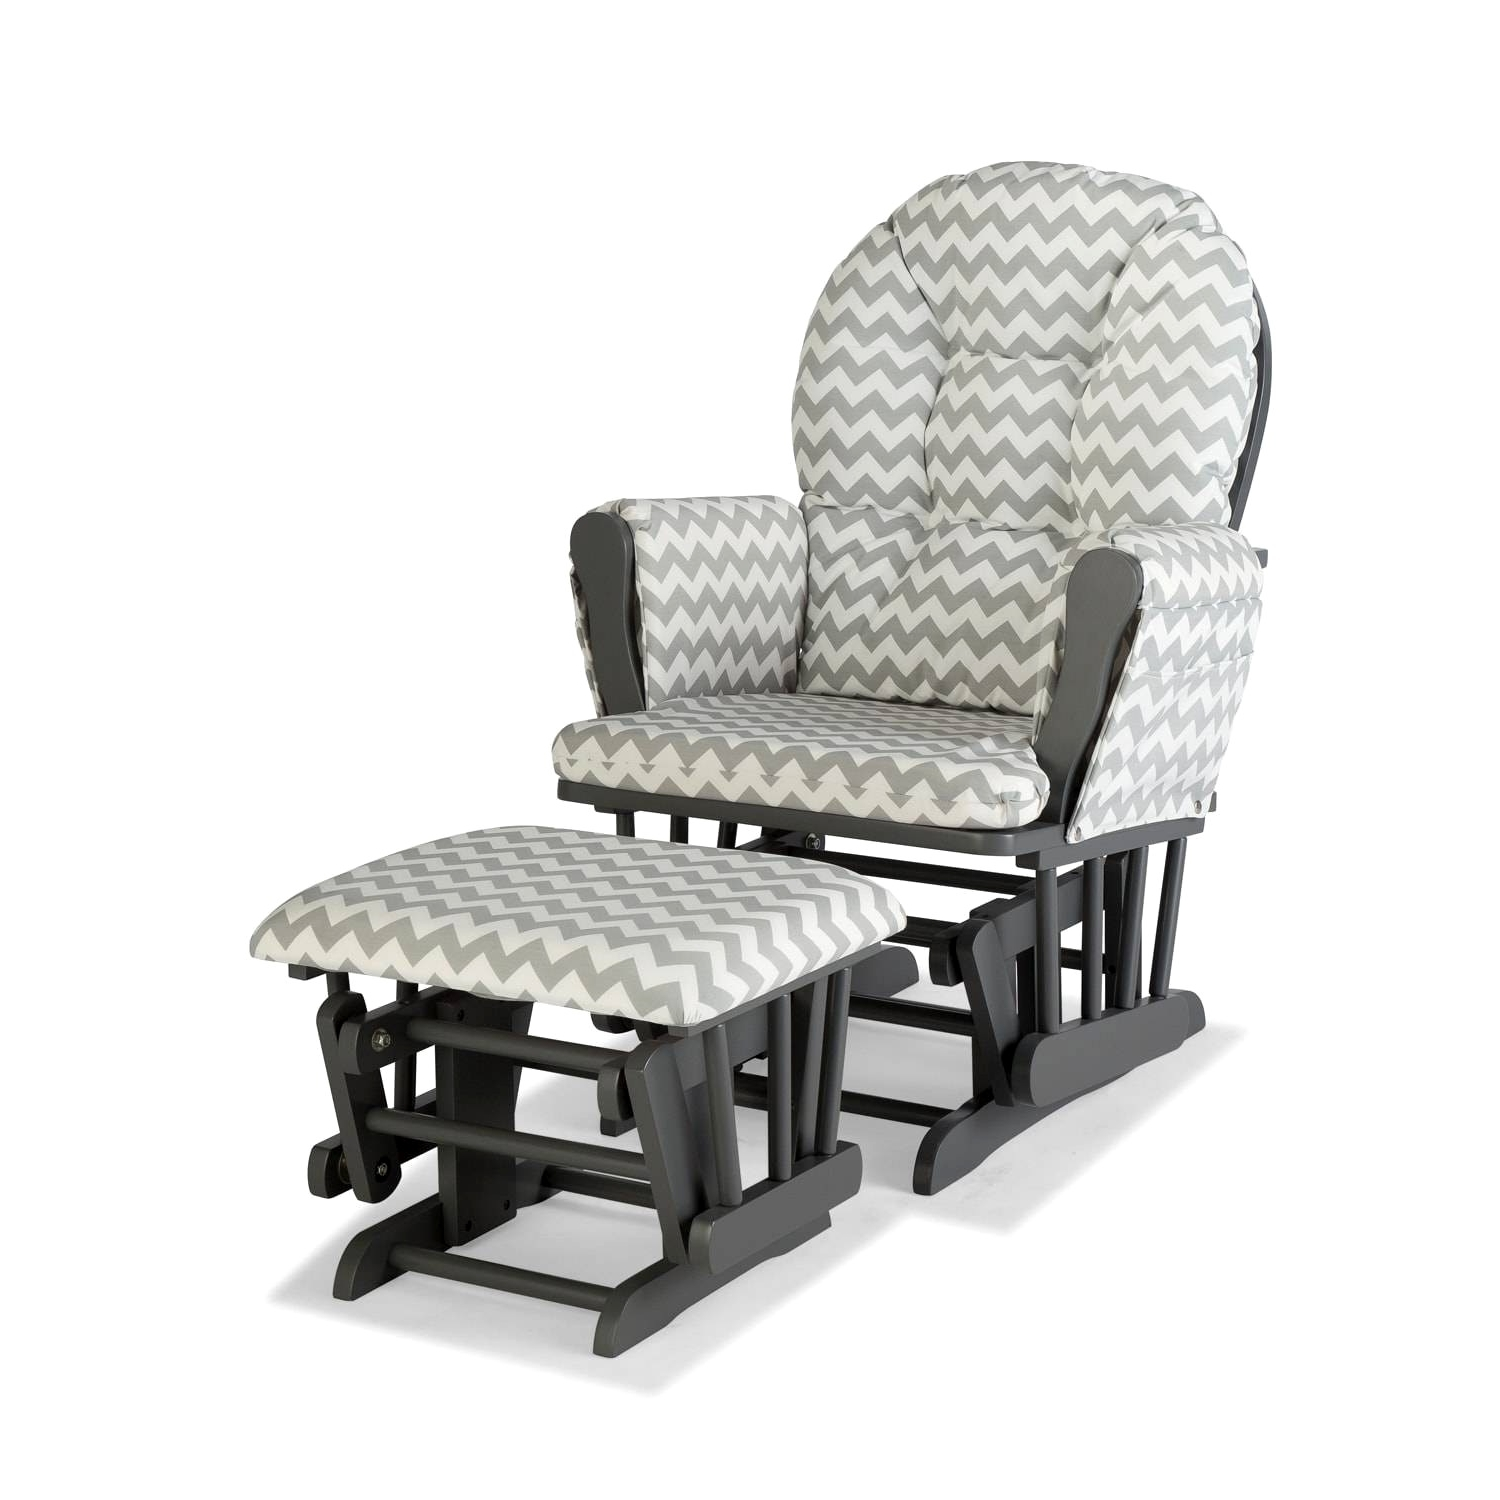 Patio Rocking Chairs With Covers In Trendy Rocking Chair Best Outdoor Patio Rocking Chairs Lovely Victorian (View 12 of 20)